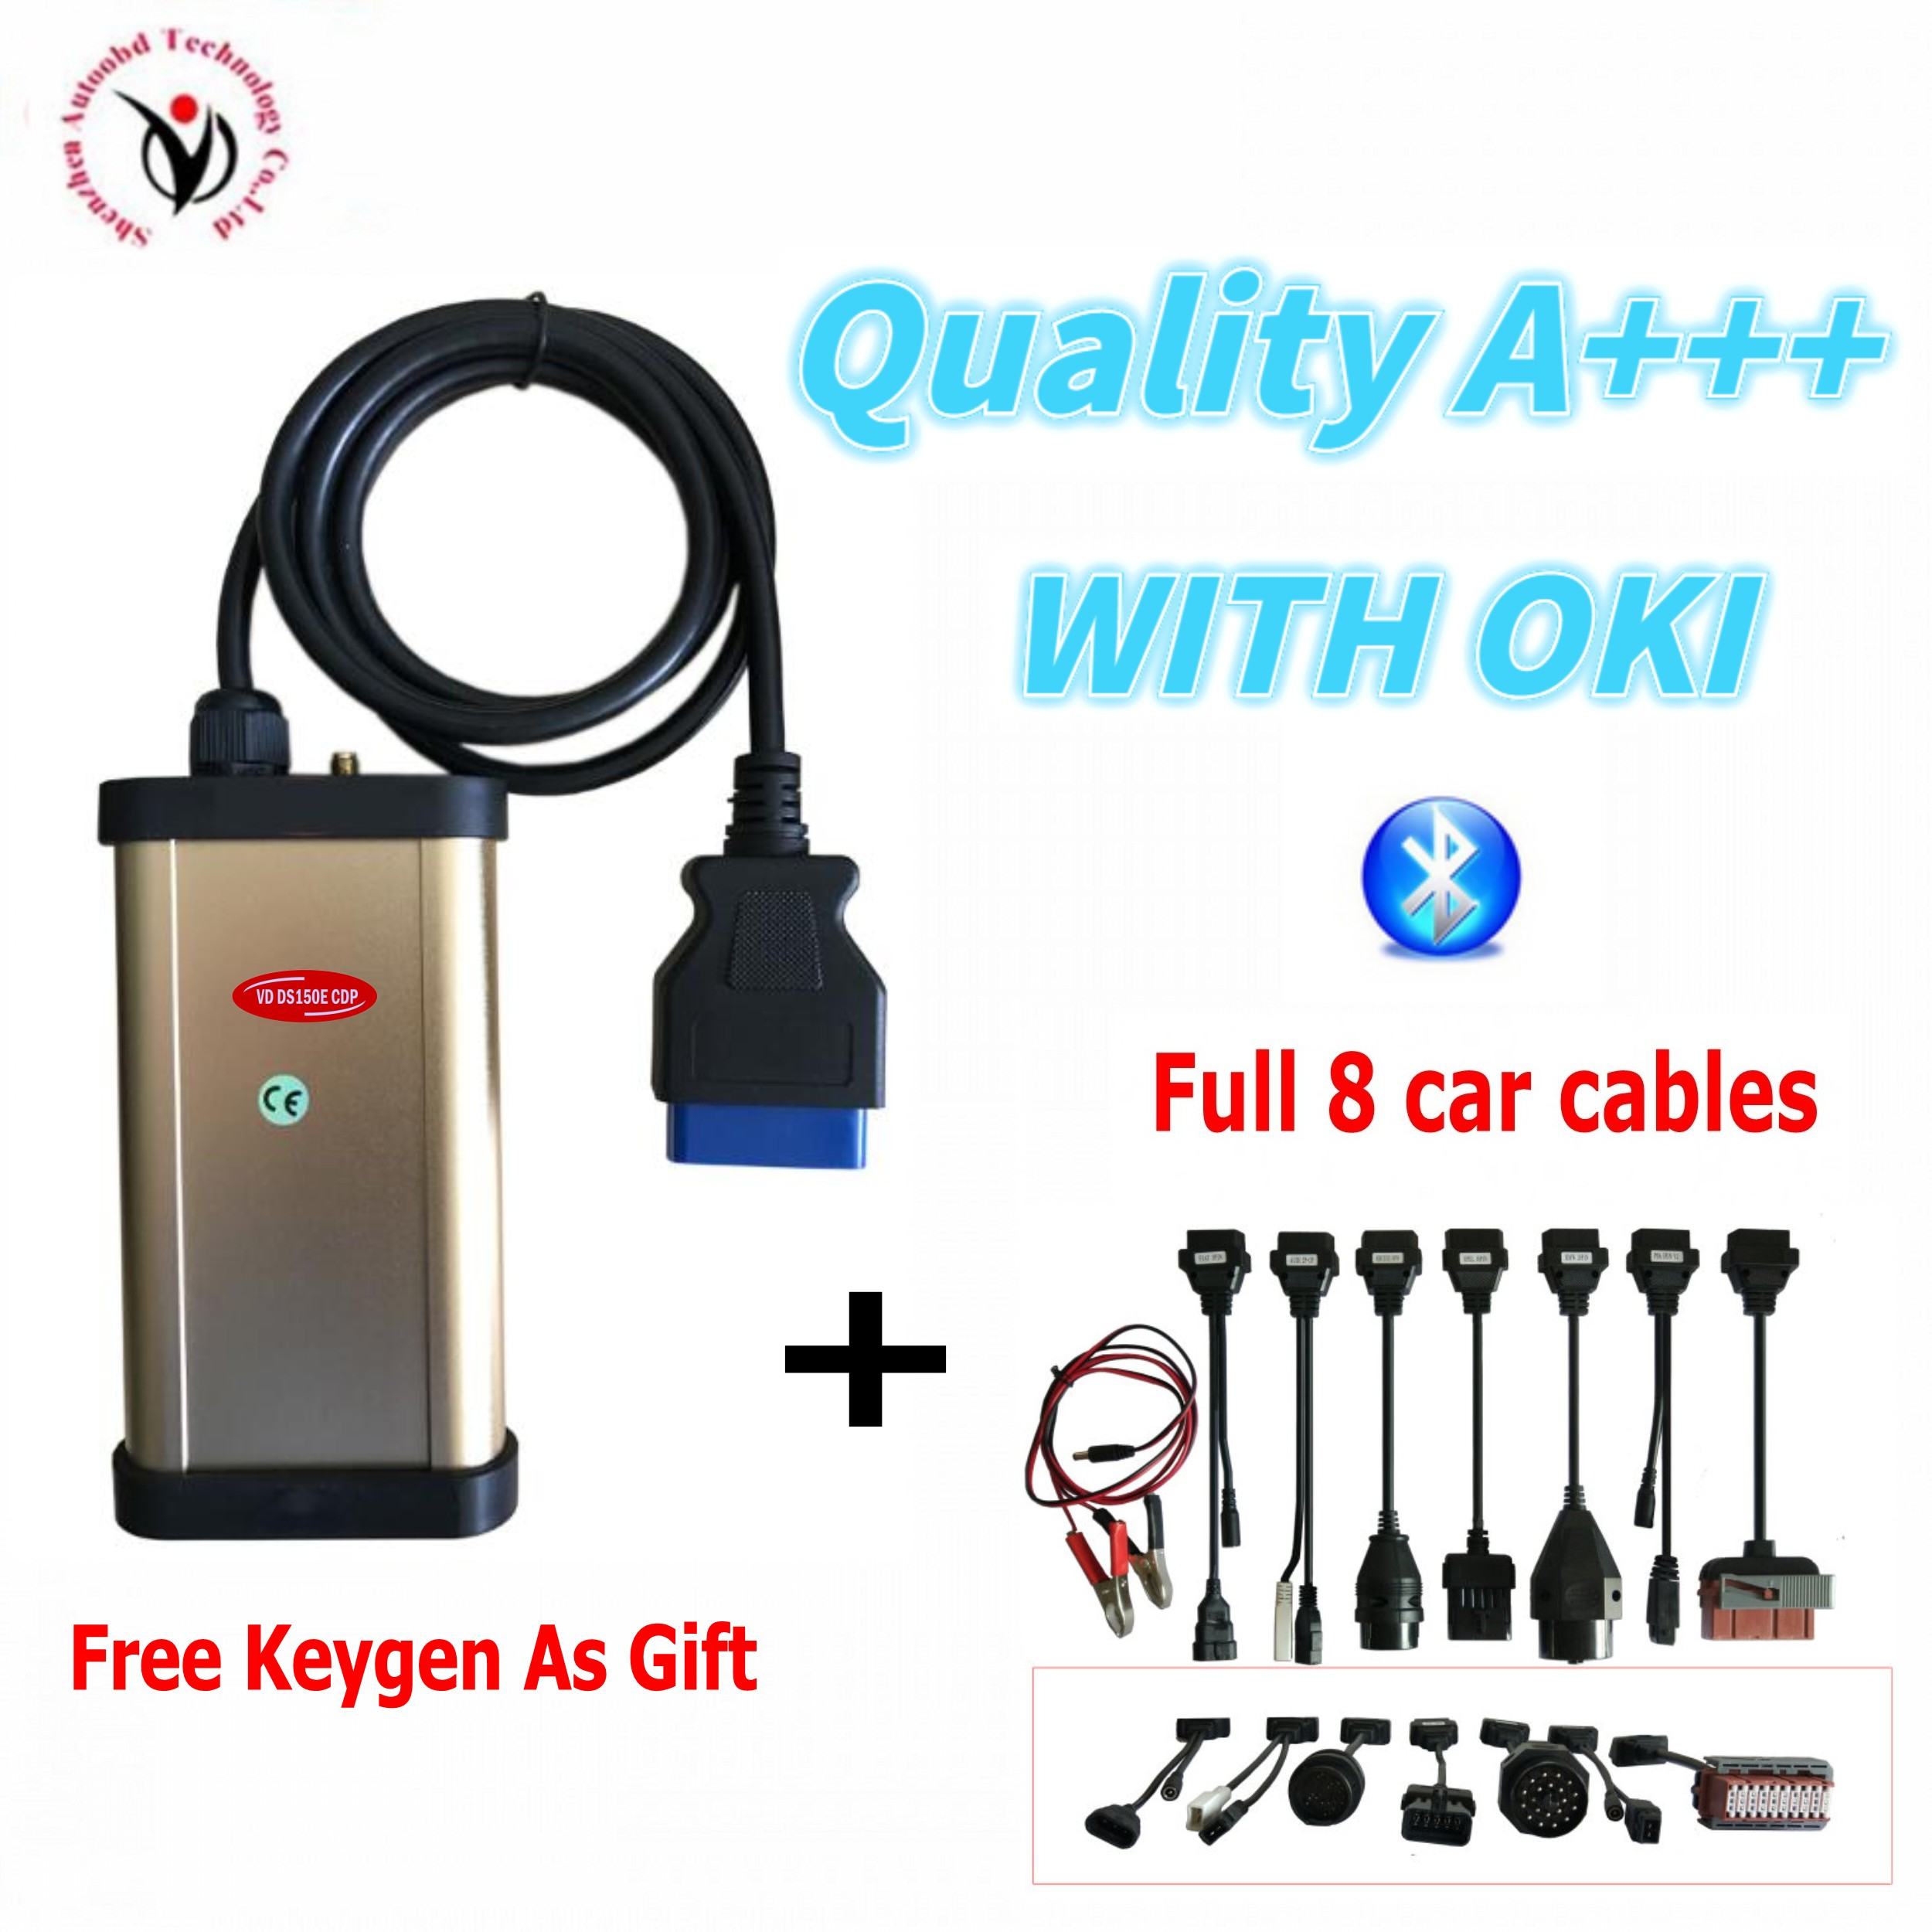 OKI CHIP ! Vd Ds150e Cdp New Gold With Bluetooth + Keygen For Vdijk Autocoms Pro Cars&trucks Obd2 Obd Diagnostic Tool Free Ship